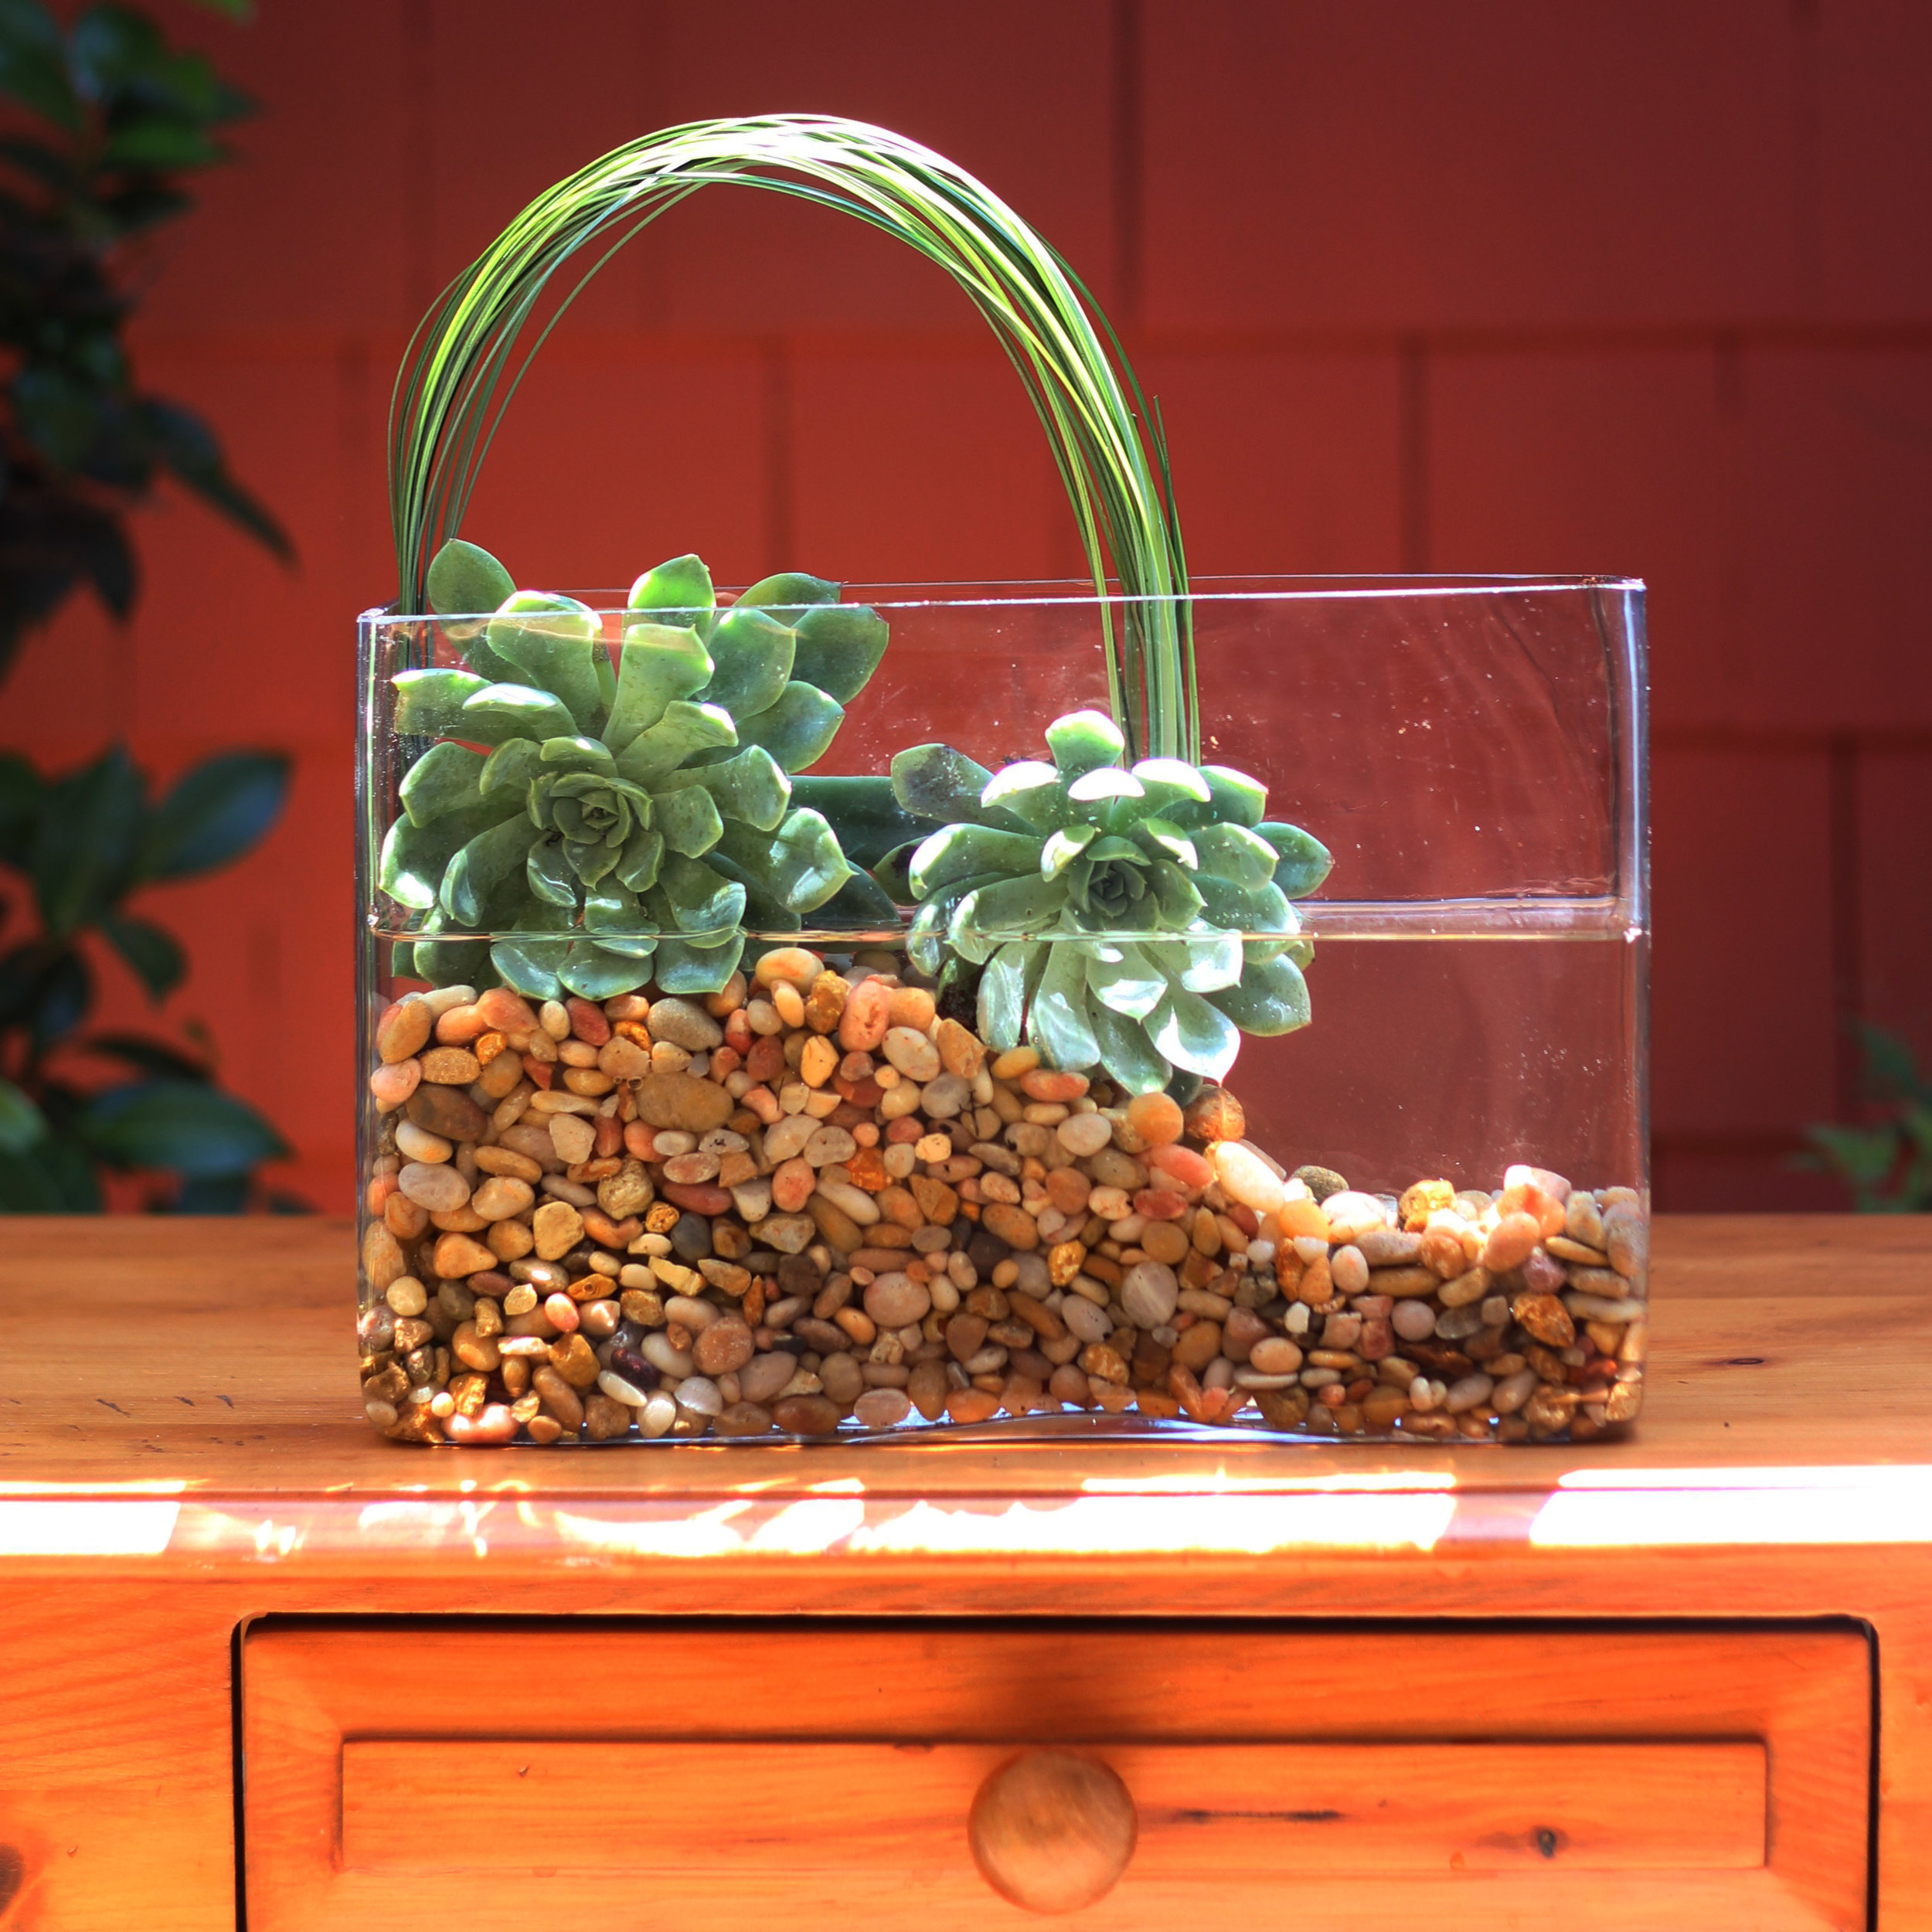 Push ends of grass down with a chopstick. Low arch goes from 2nd succulent to corner.